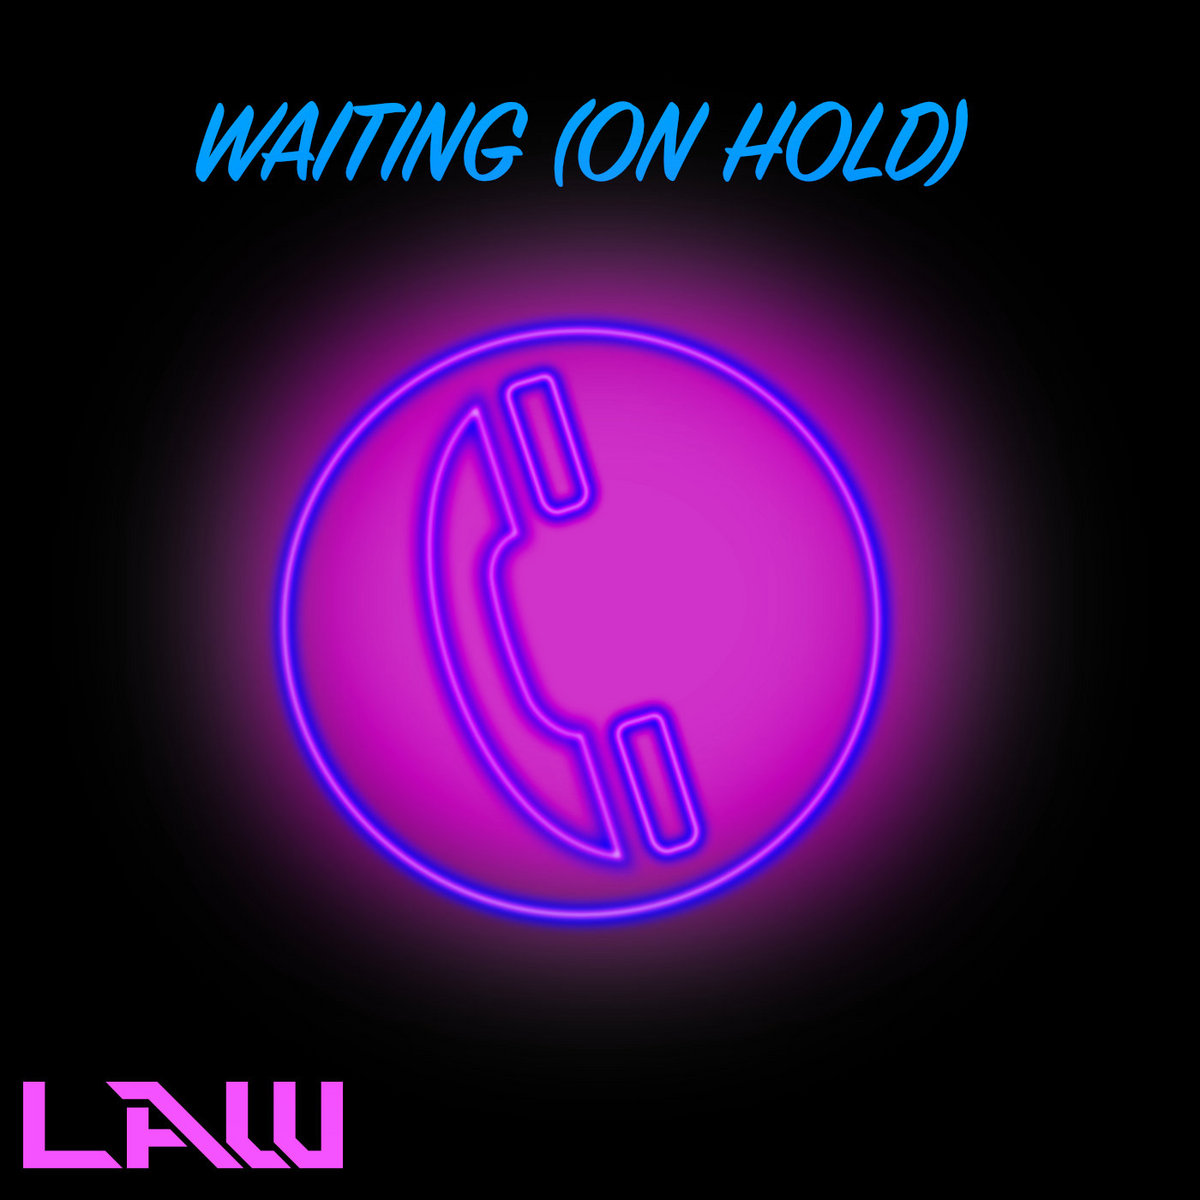 Waiting (On Hold) by LAW